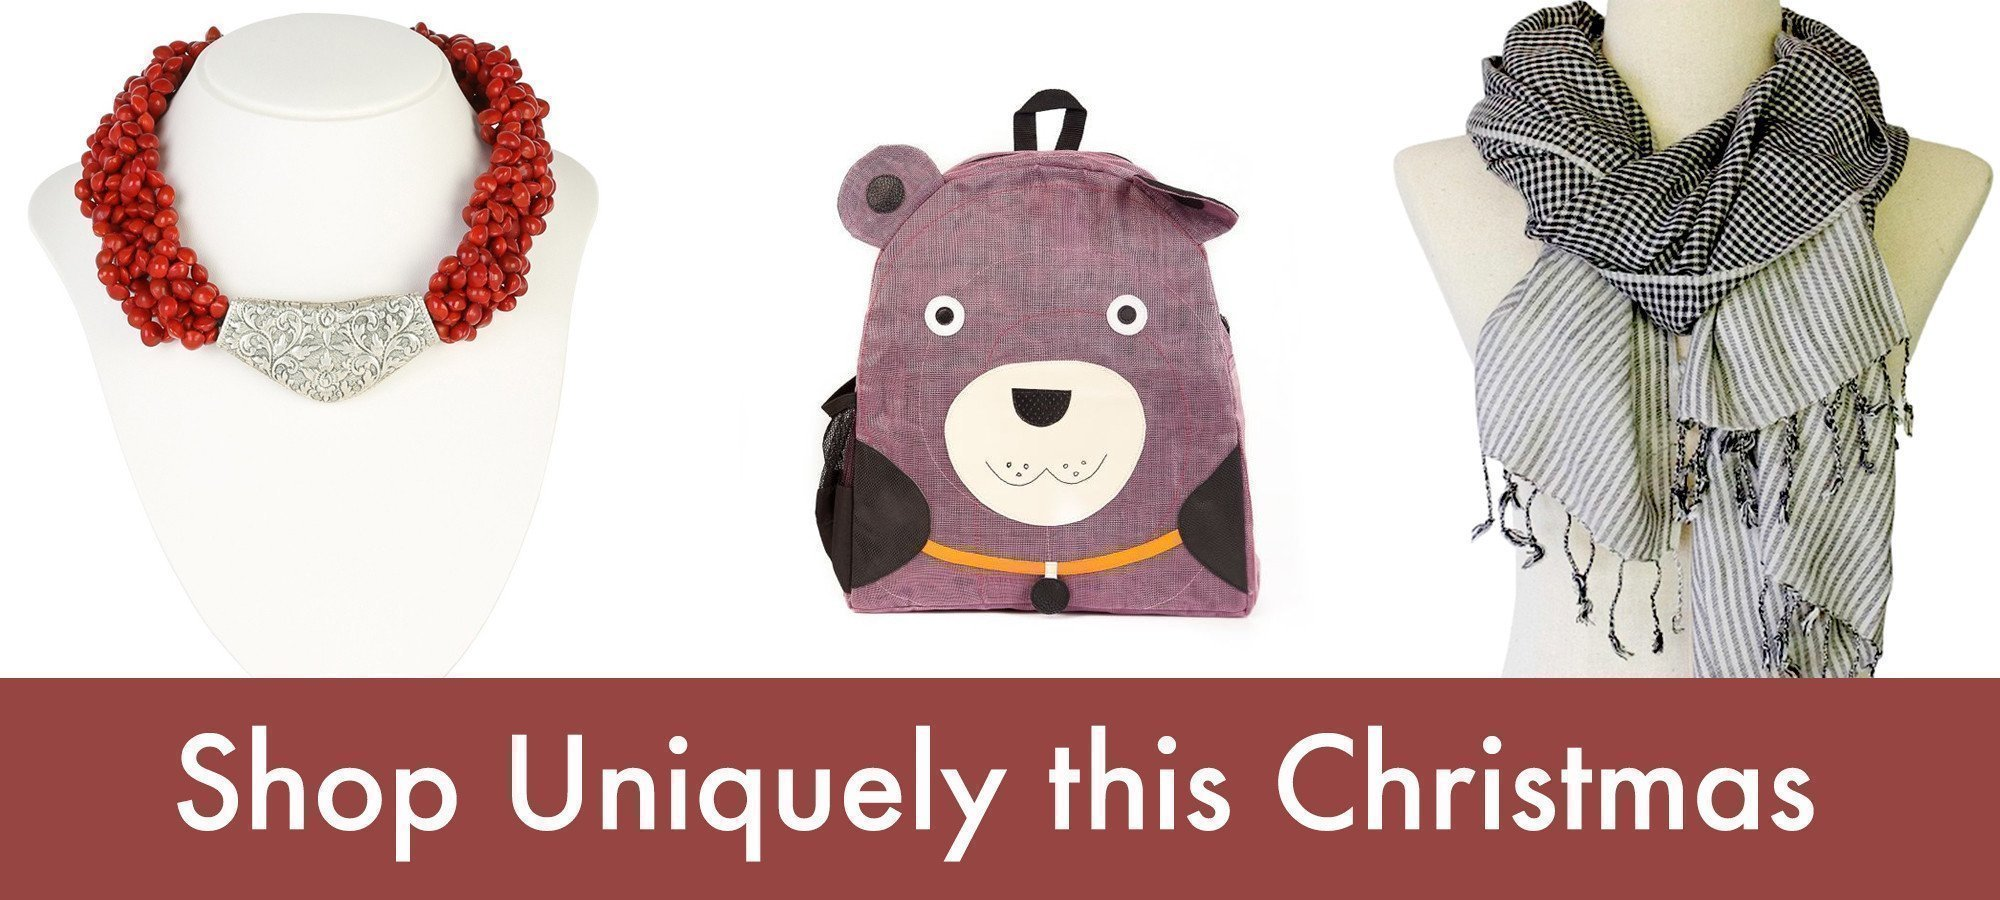 Shop Uniquely this Christmas - Ethical Christmas Gifts for Everyone!